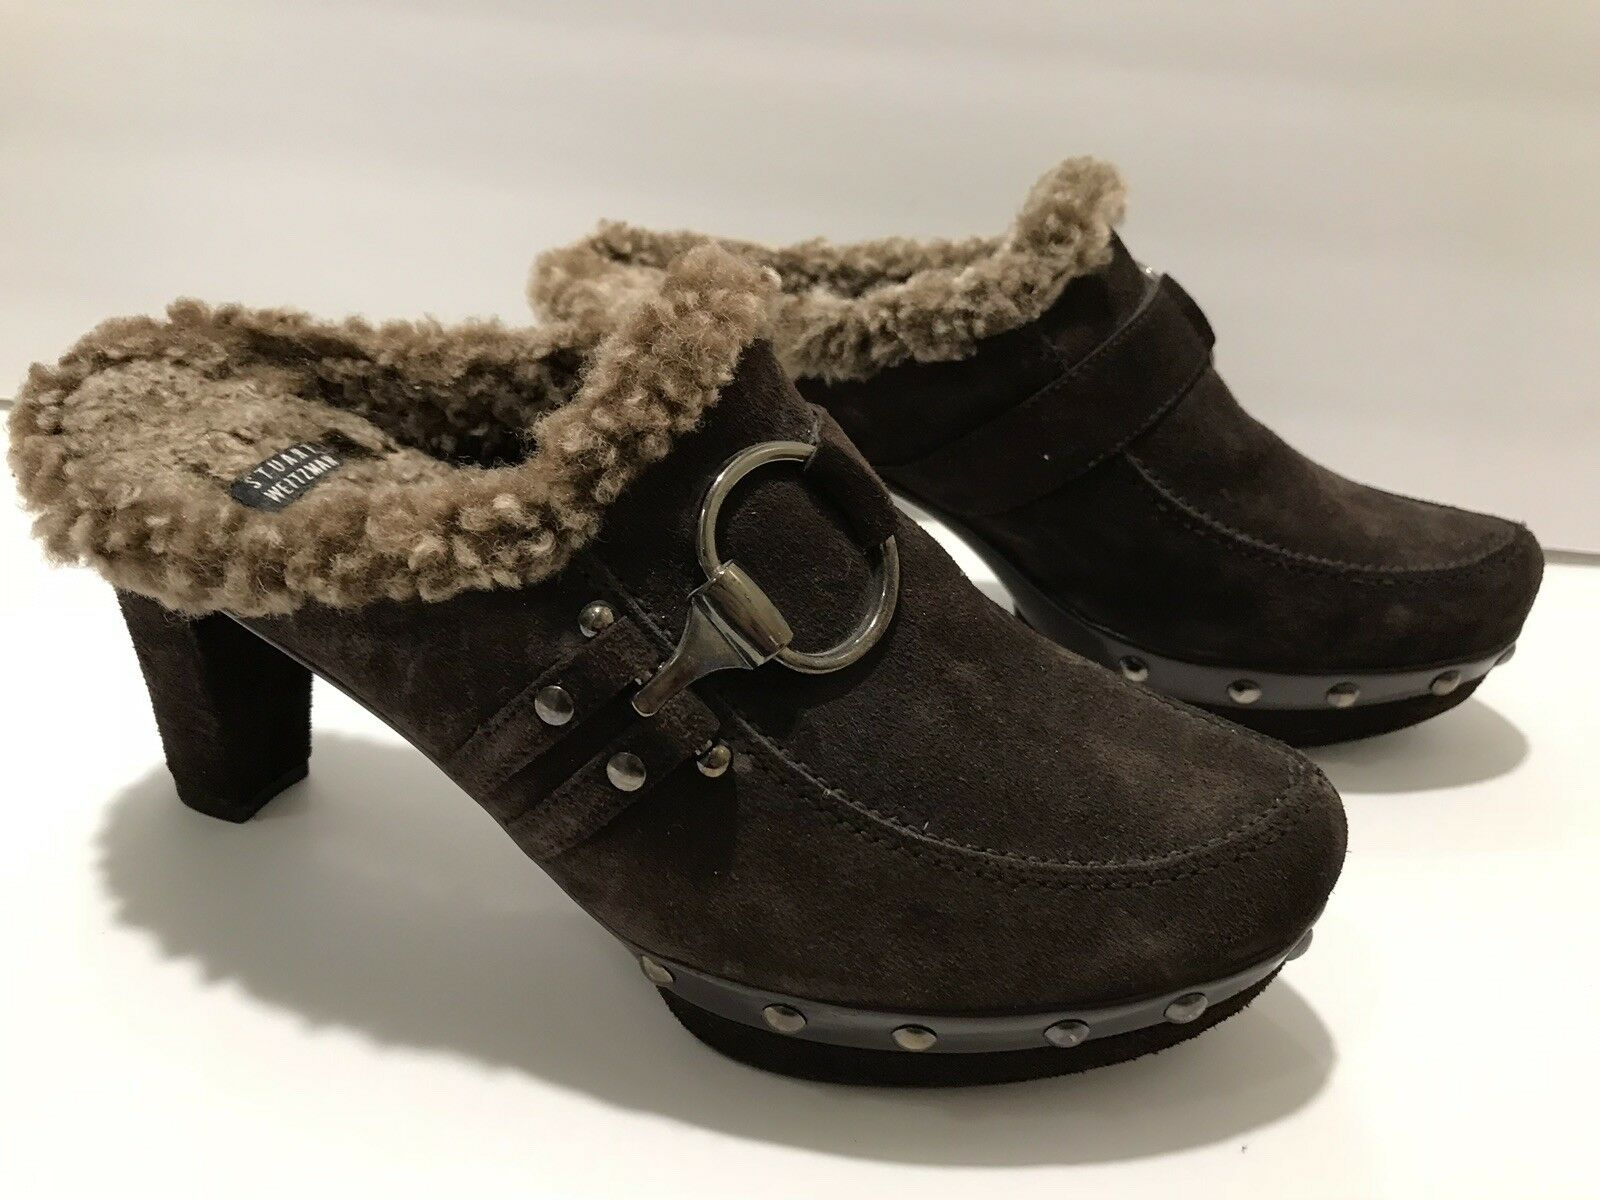 Stuart Weitzman Pumps Mules Clogs Warm Real Fur Heel Suede Brown 8.5 M Nice